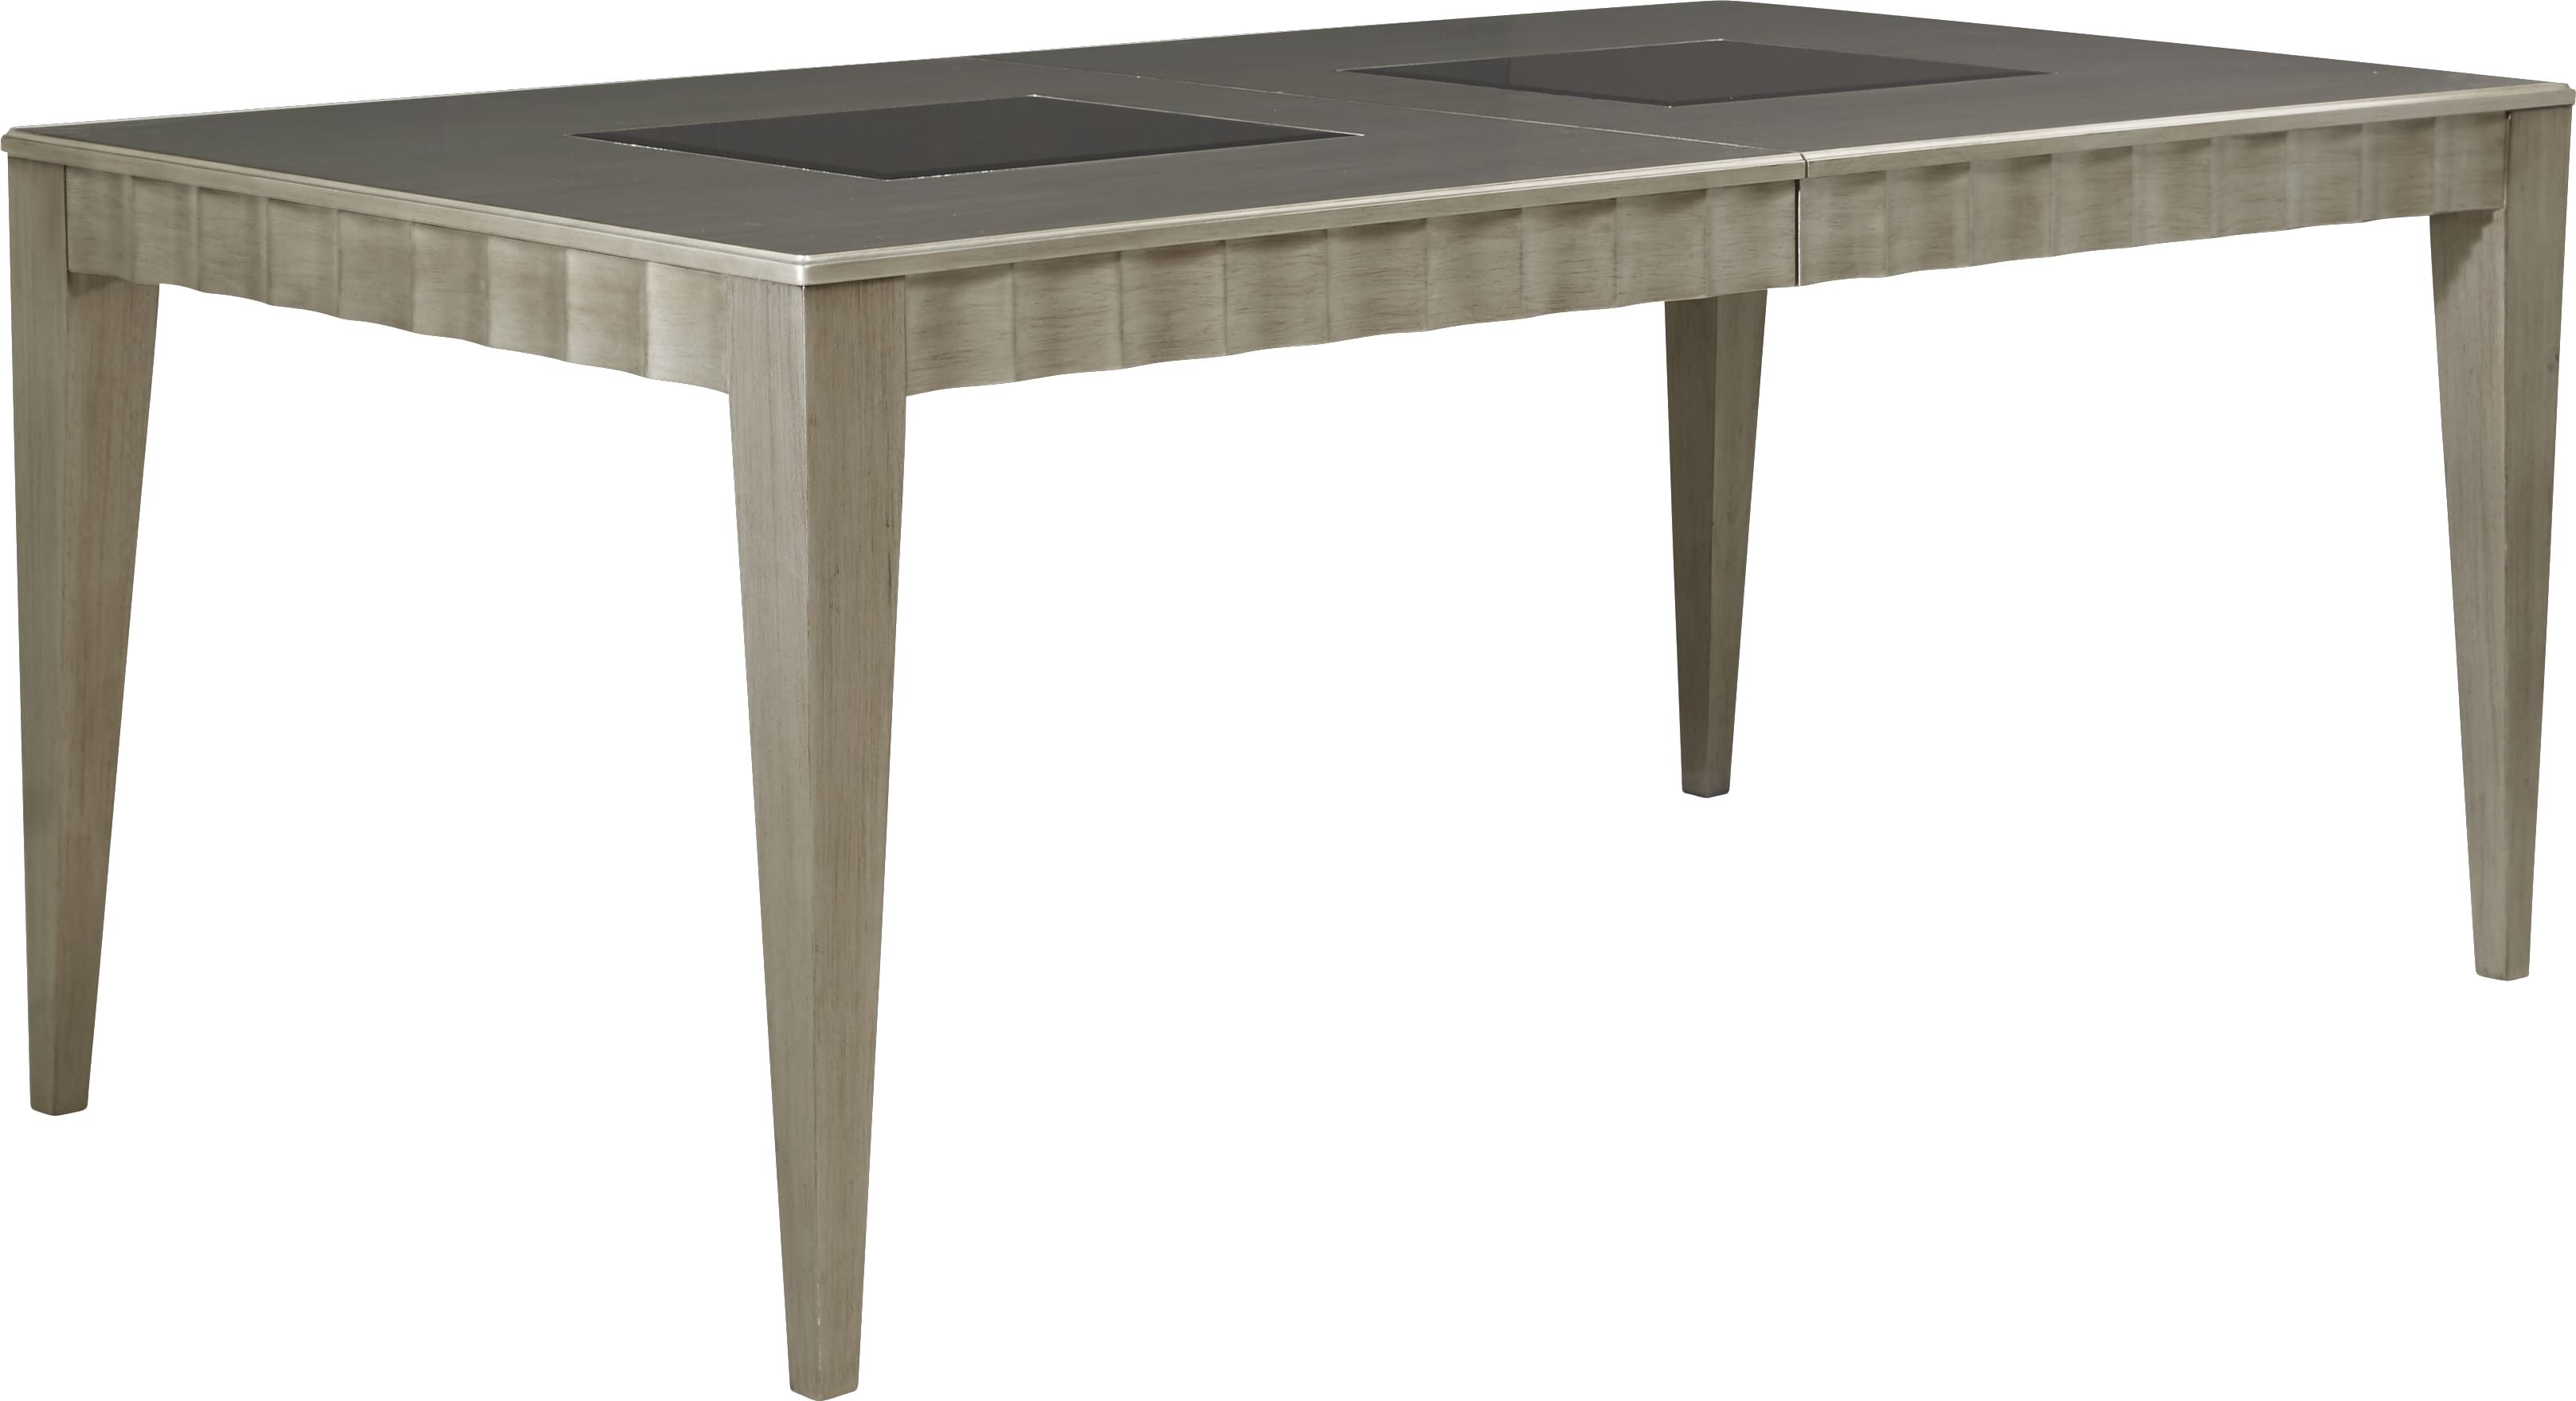 Sofia Vergara Delanco Pewter Dining Table Dining Table Table